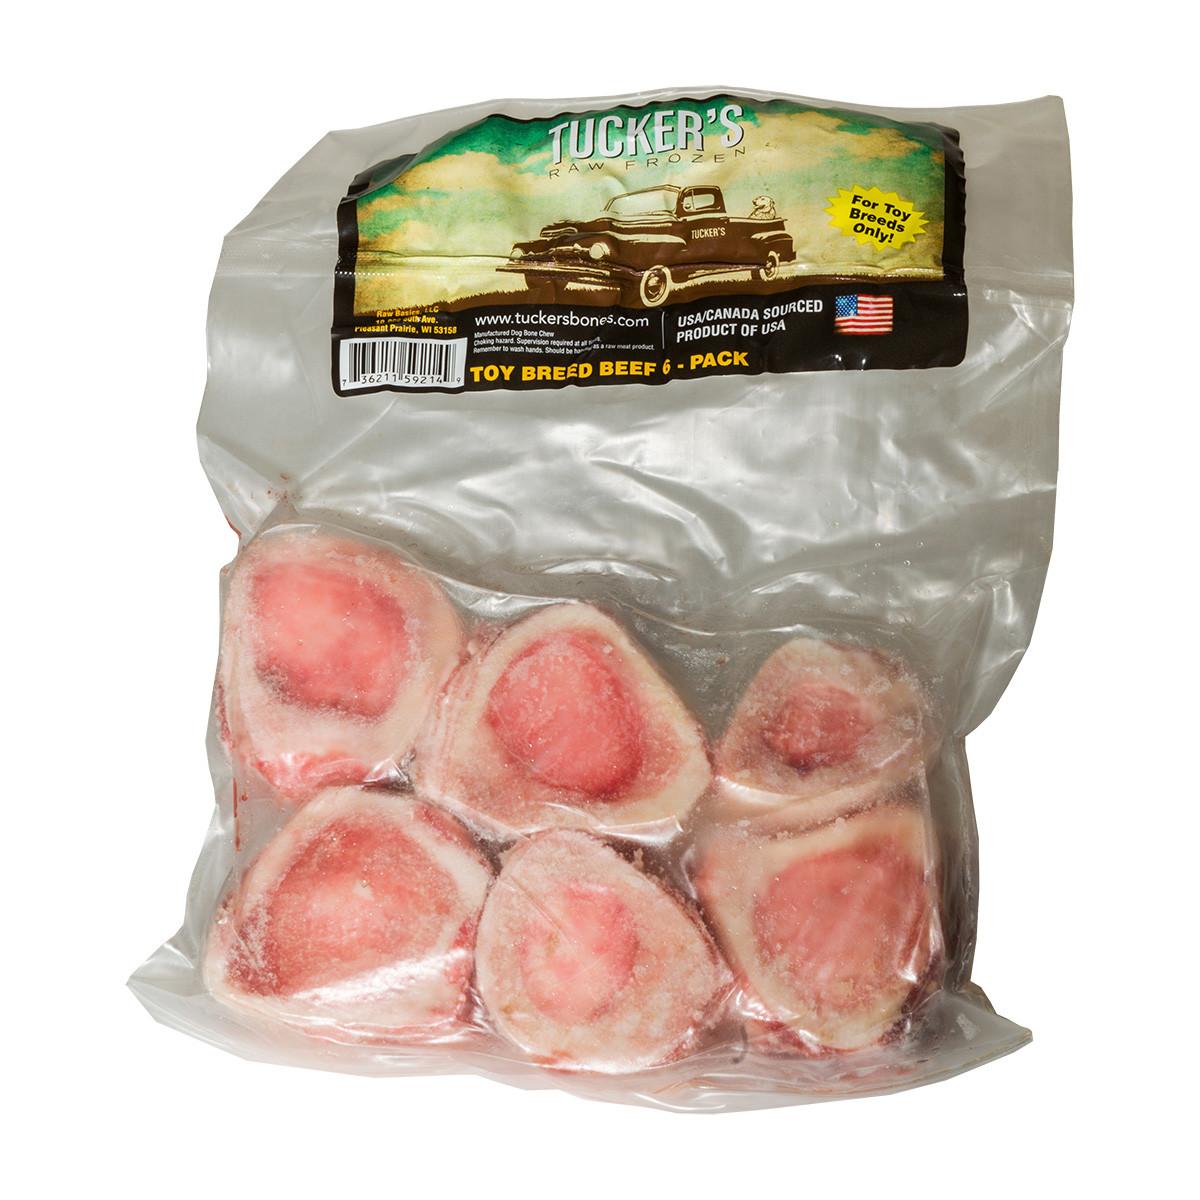 click here to shop Tucker's Raw Frozen Beef Toy Breed Dog Bones.